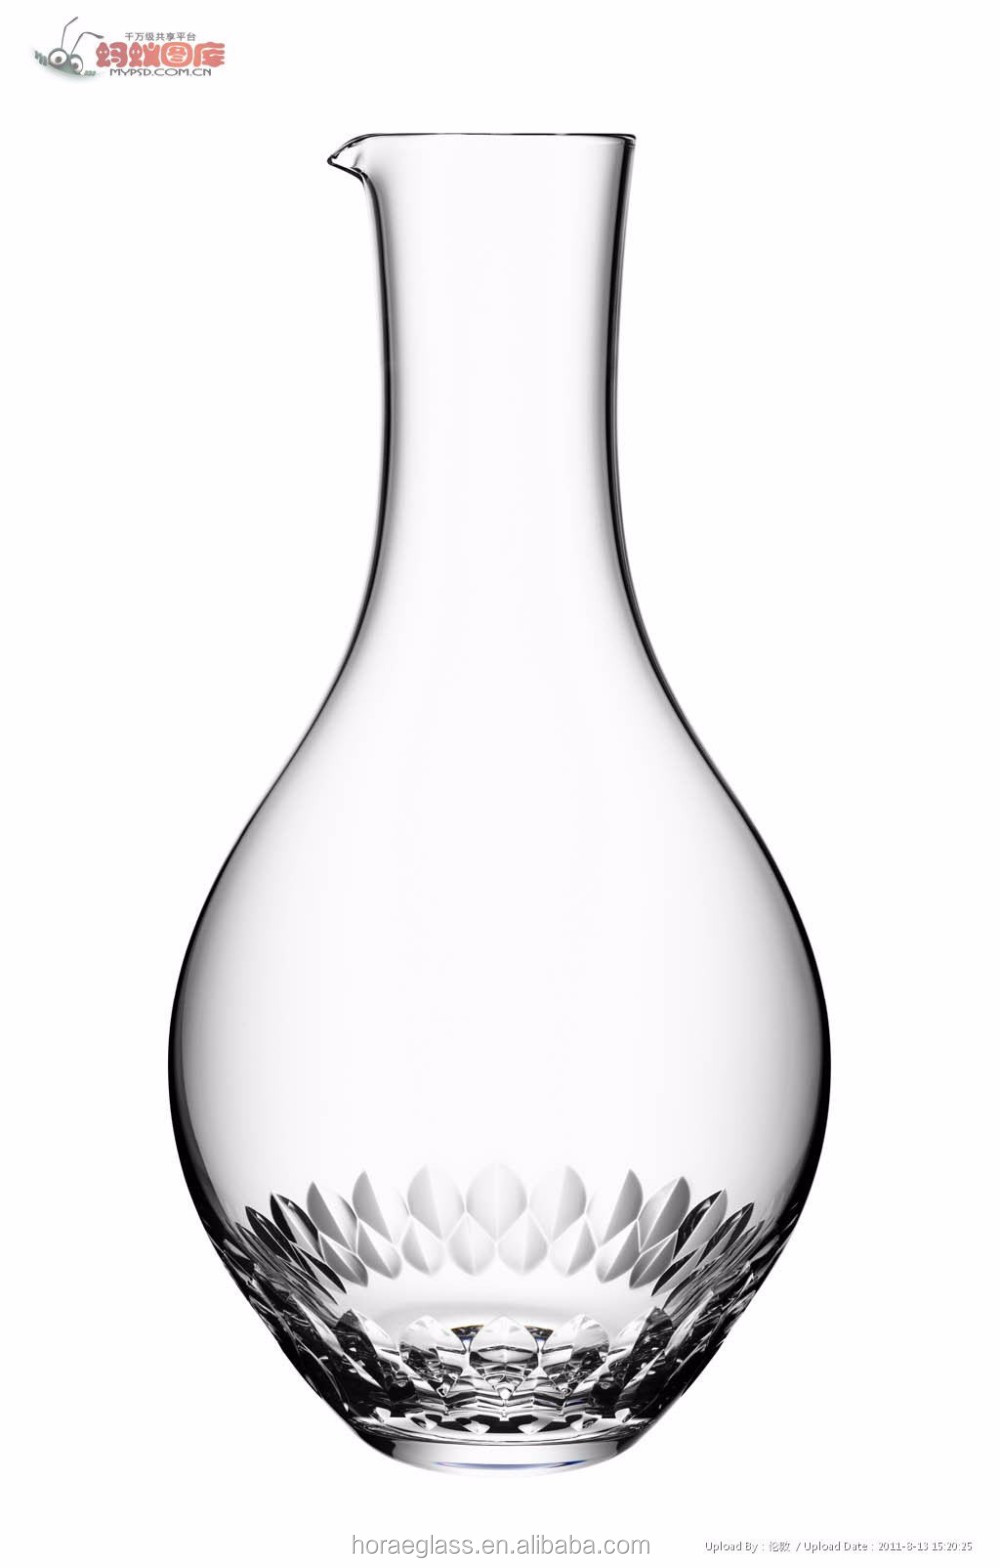 281 & Cheap Wholesale Different Types Tall Clear Flower Glass Vase - Buy Glass VaseBlue Glass VaseShort Glass Vases Product on Alibaba.com